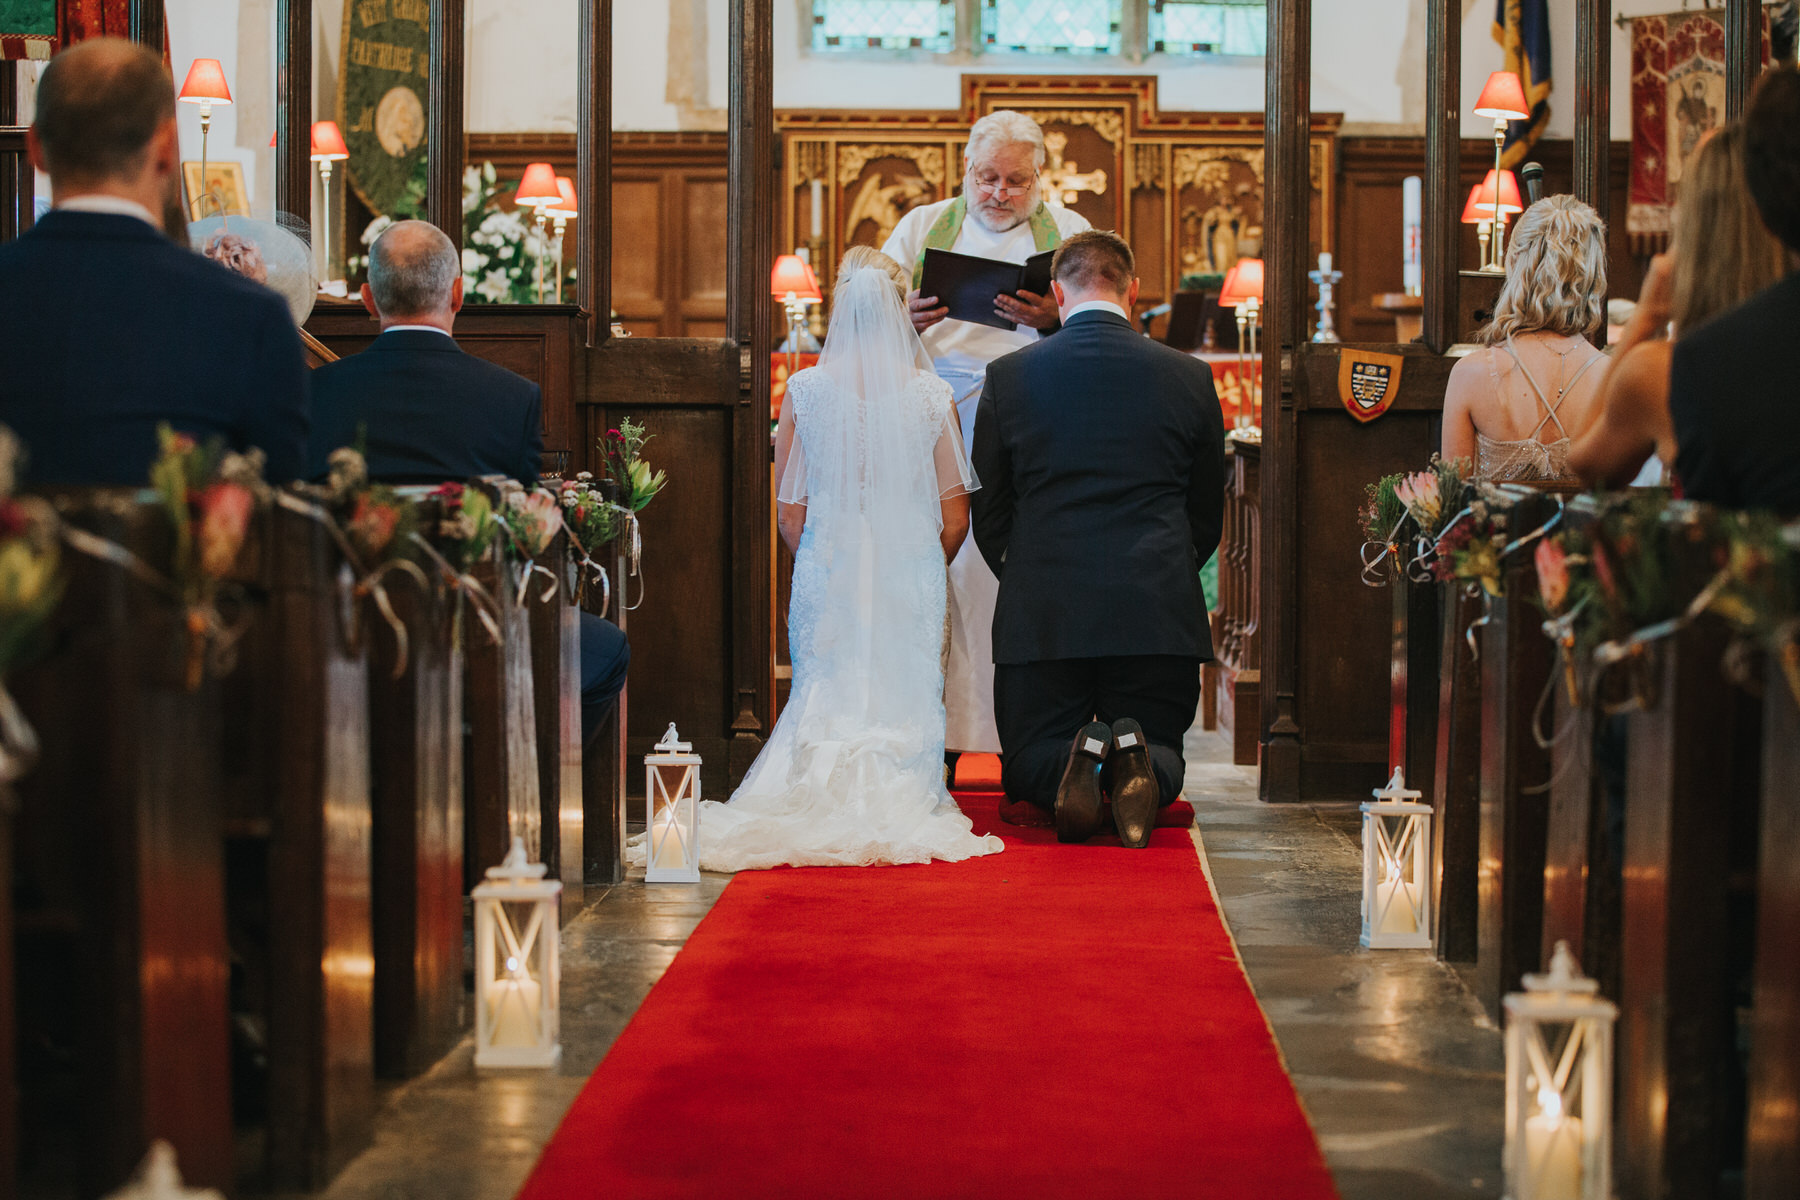 110  bride and groom receiving blessing church wedding ceremony .jpg